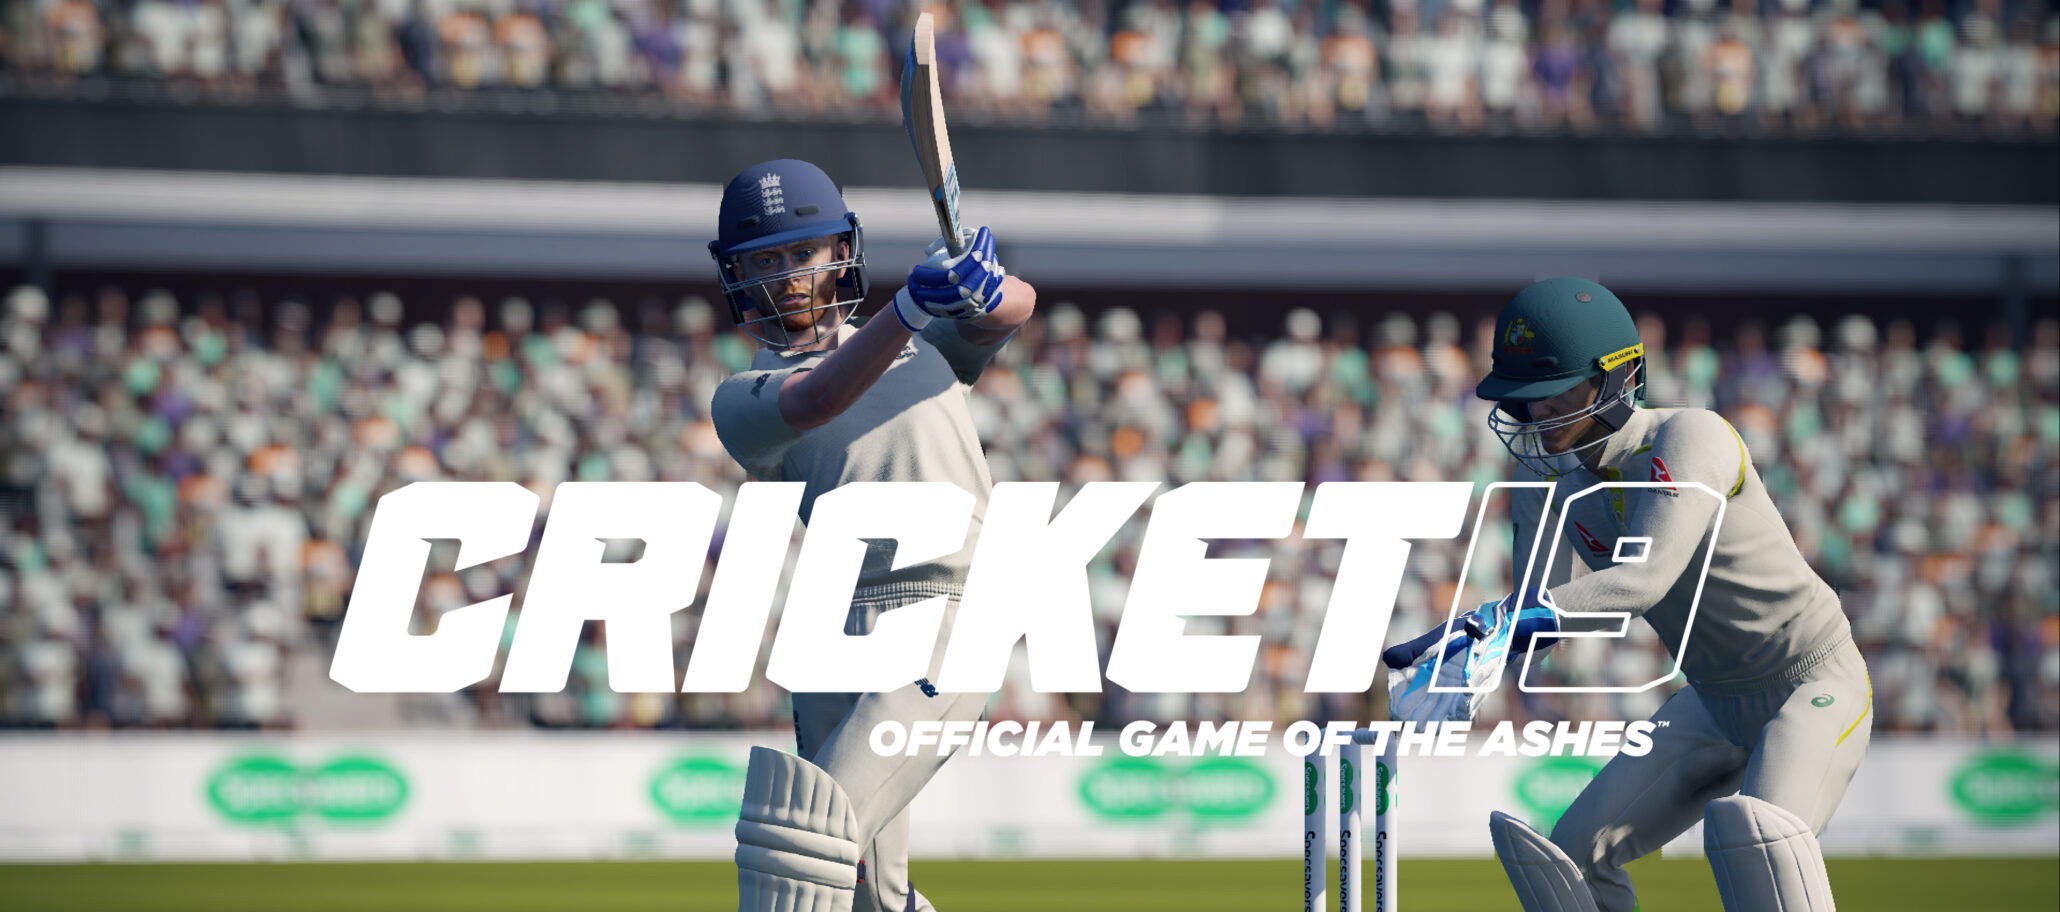 Prepare Your Rackets Cricket 19 The Official Game Of The